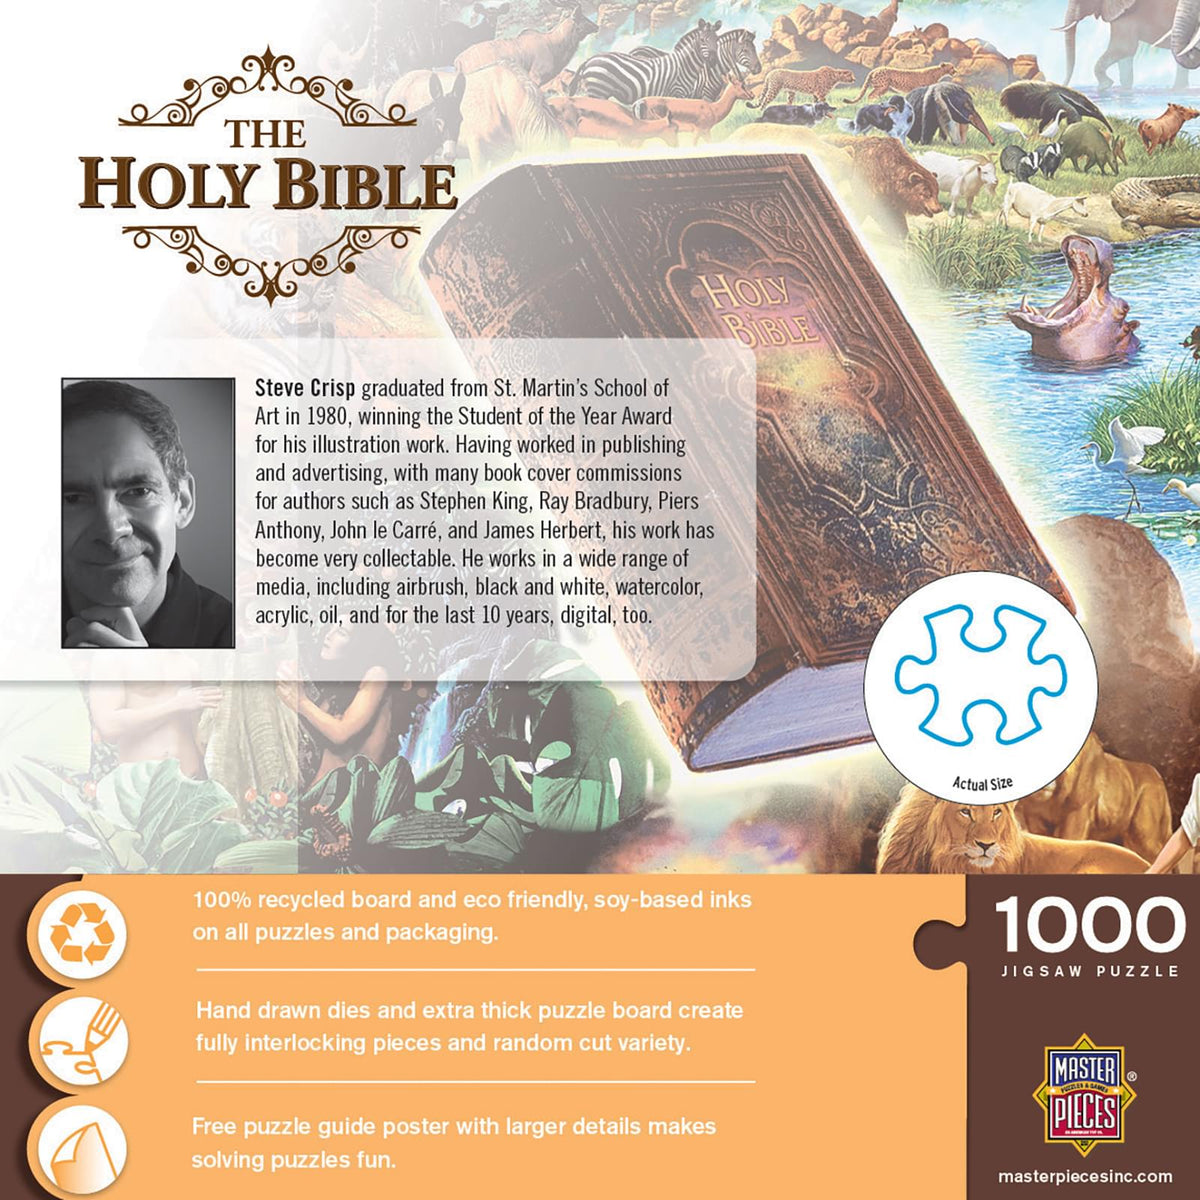 The Holy Bible 1000 Piece Jigsaw Puzzle